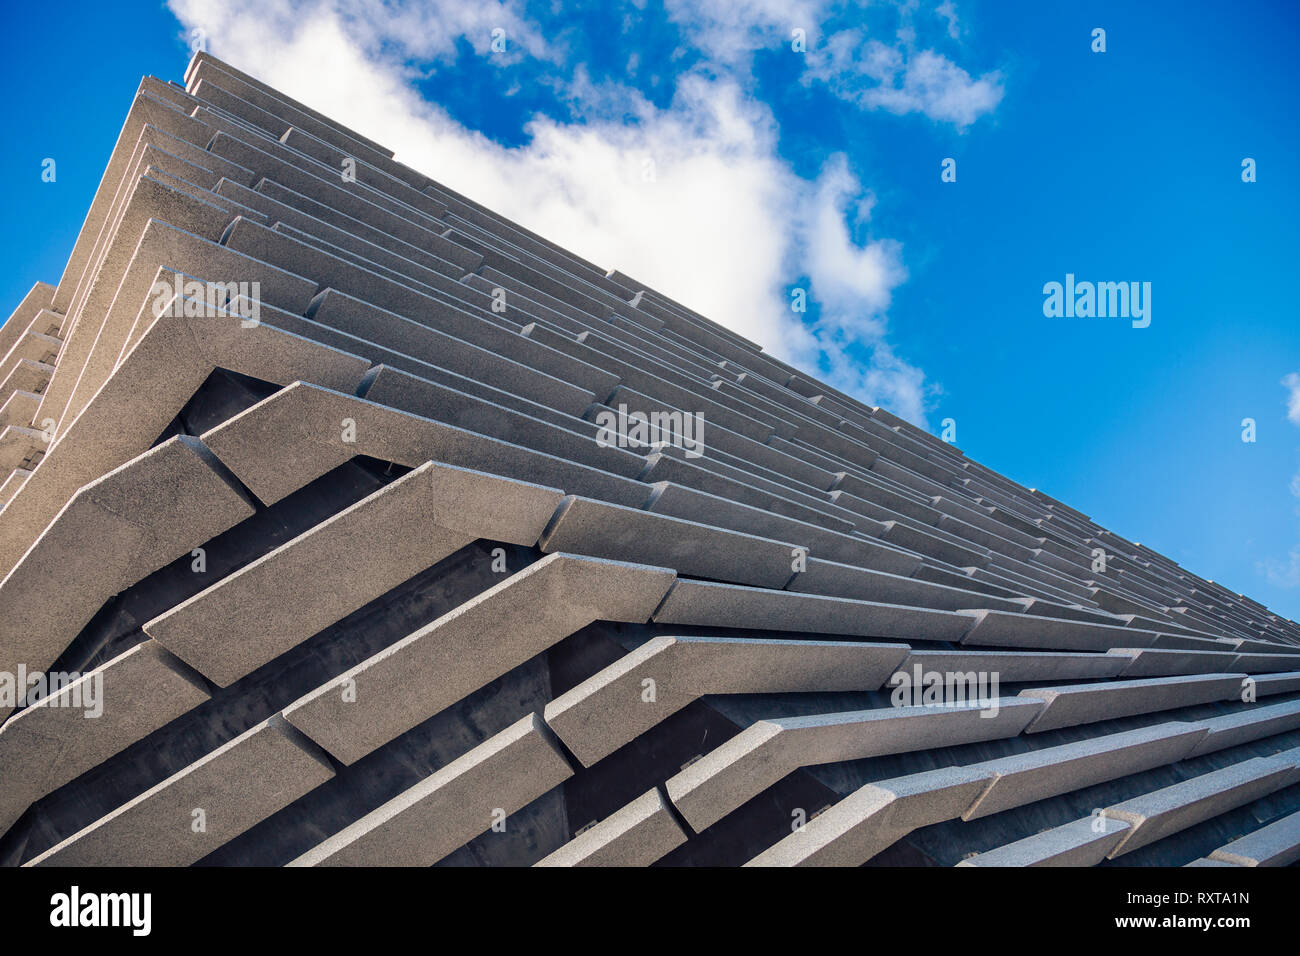 A sectional view of the stunning V&A Museum in Dundee designed by world famous architect Kengo Kuma Stock Photo